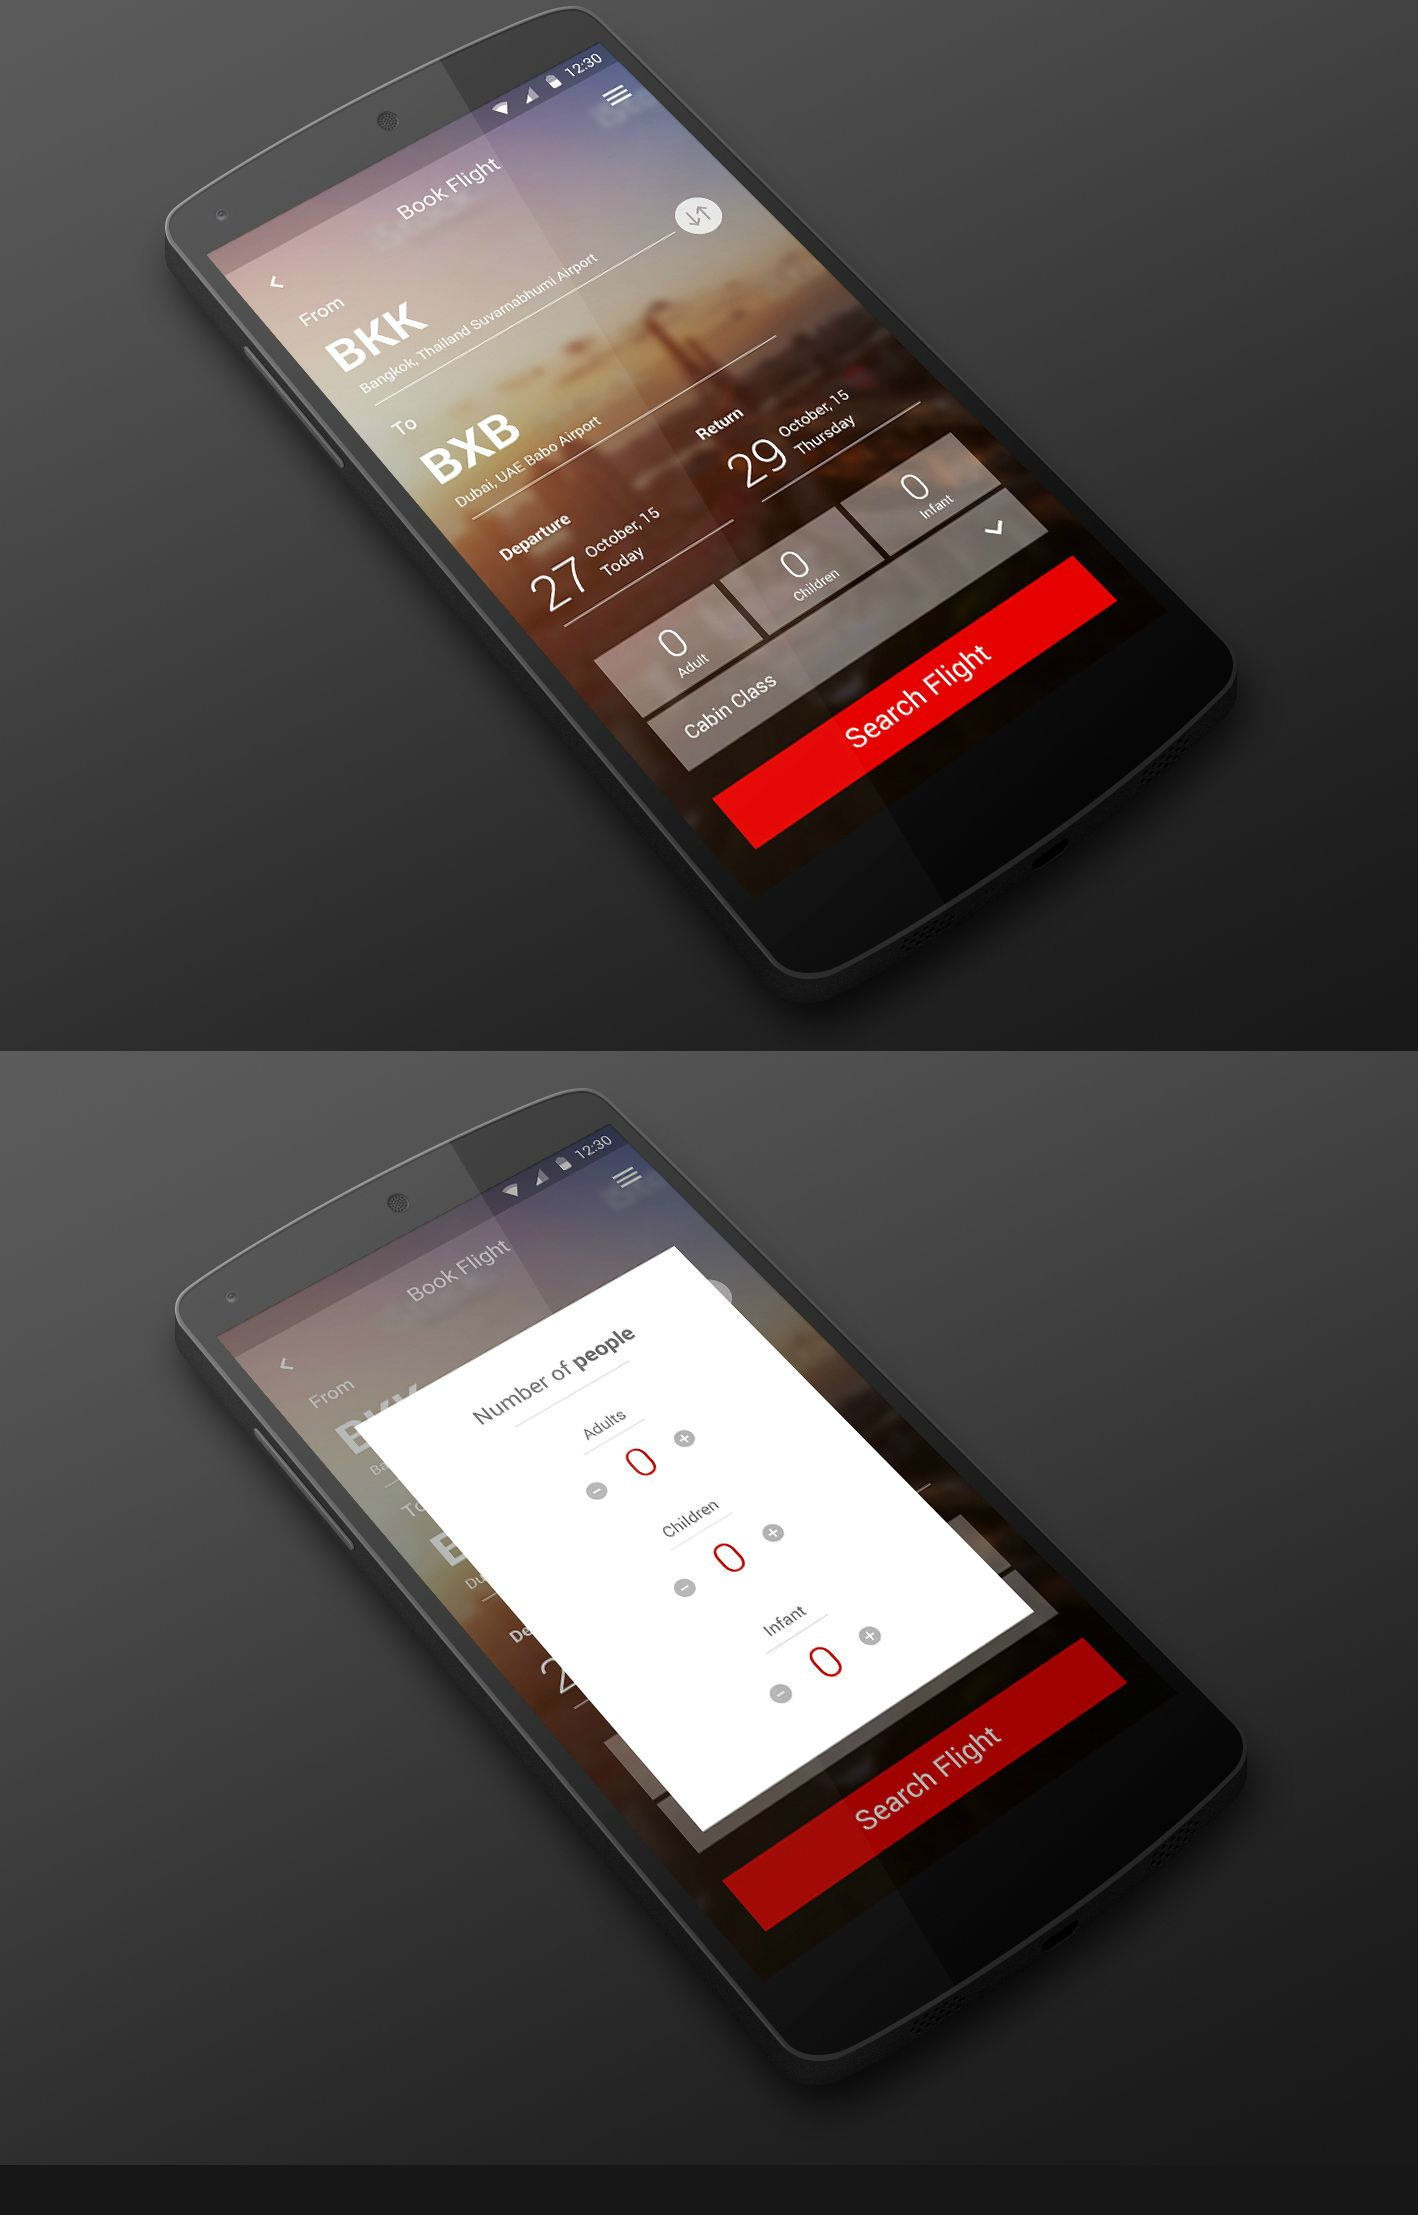 Flight booking app design created by Esolz | Mobile Apps | Pinterest ...